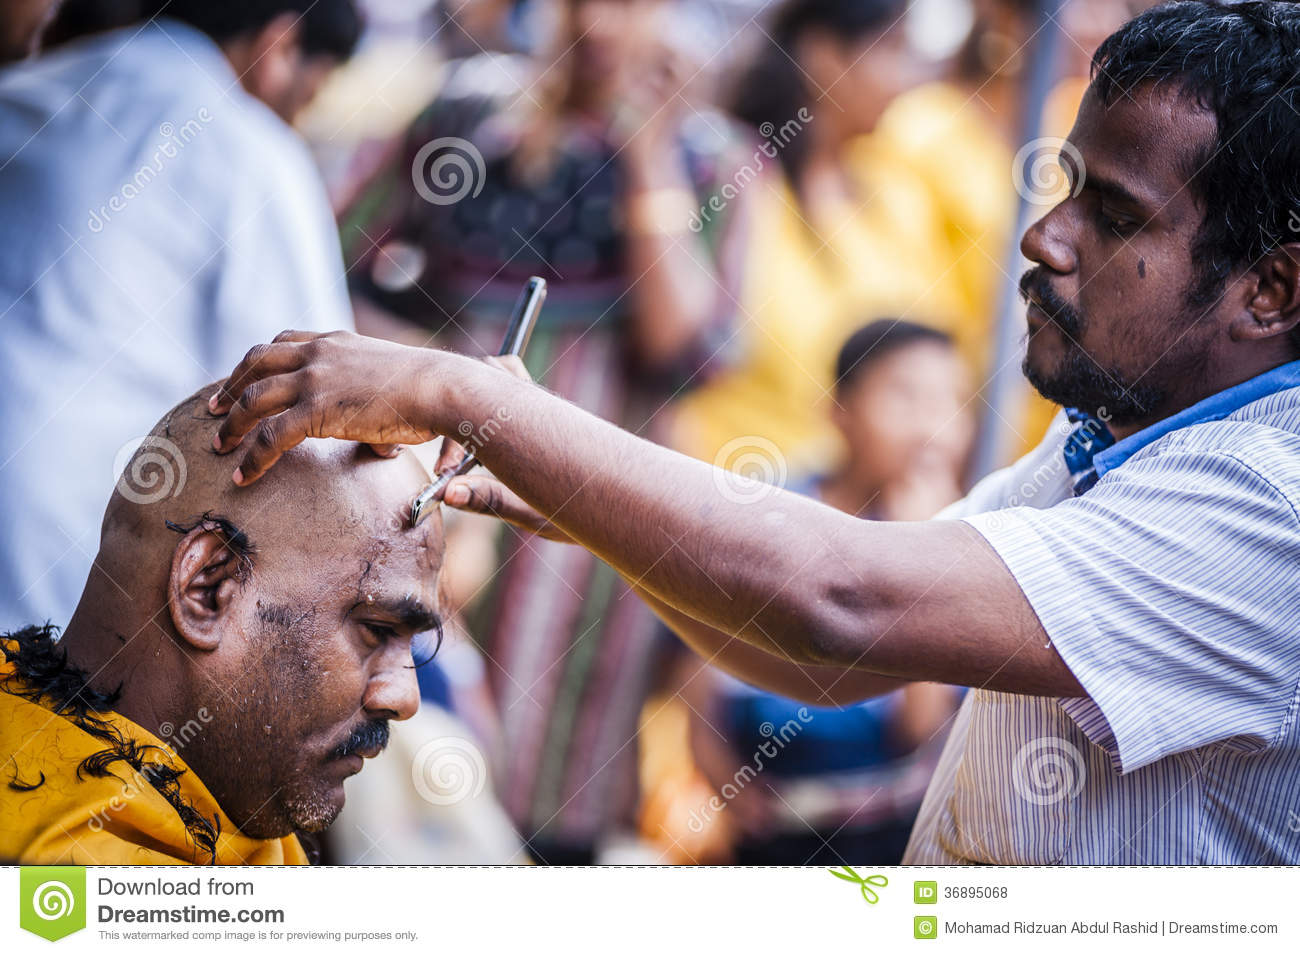 Download Thaipusam fotografia stock editoriale. Immagine di caverne - 36895068